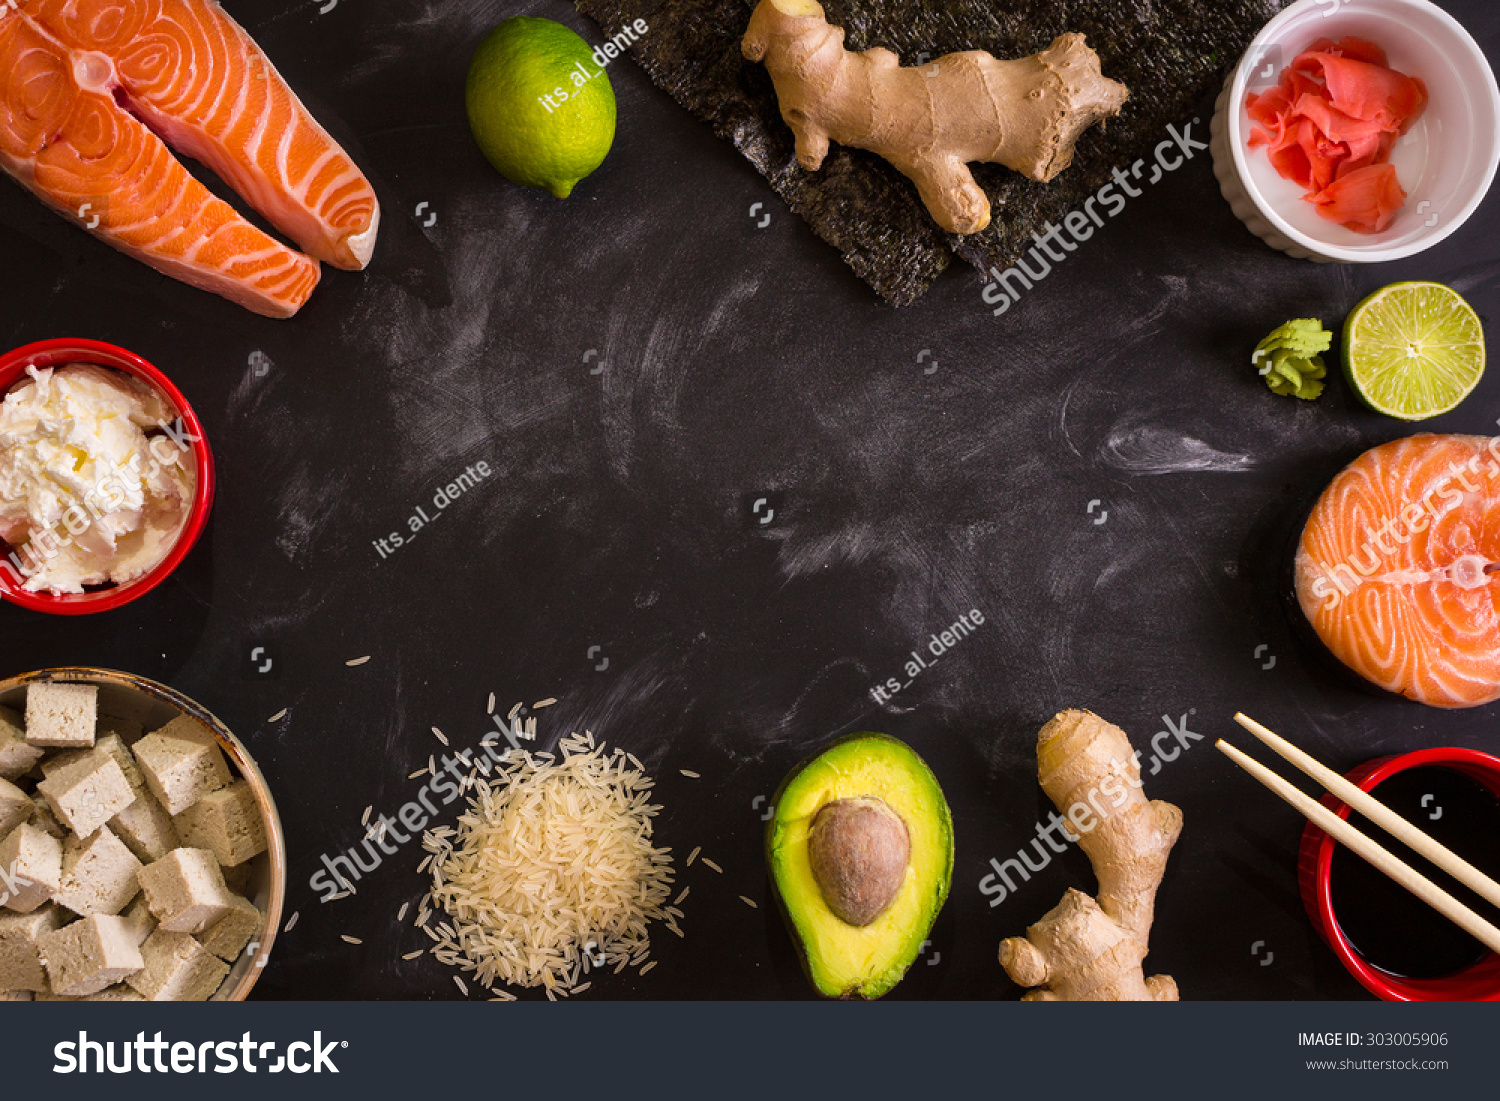 Online image photo editor shutterstock editor for Asian cuisine ingredients